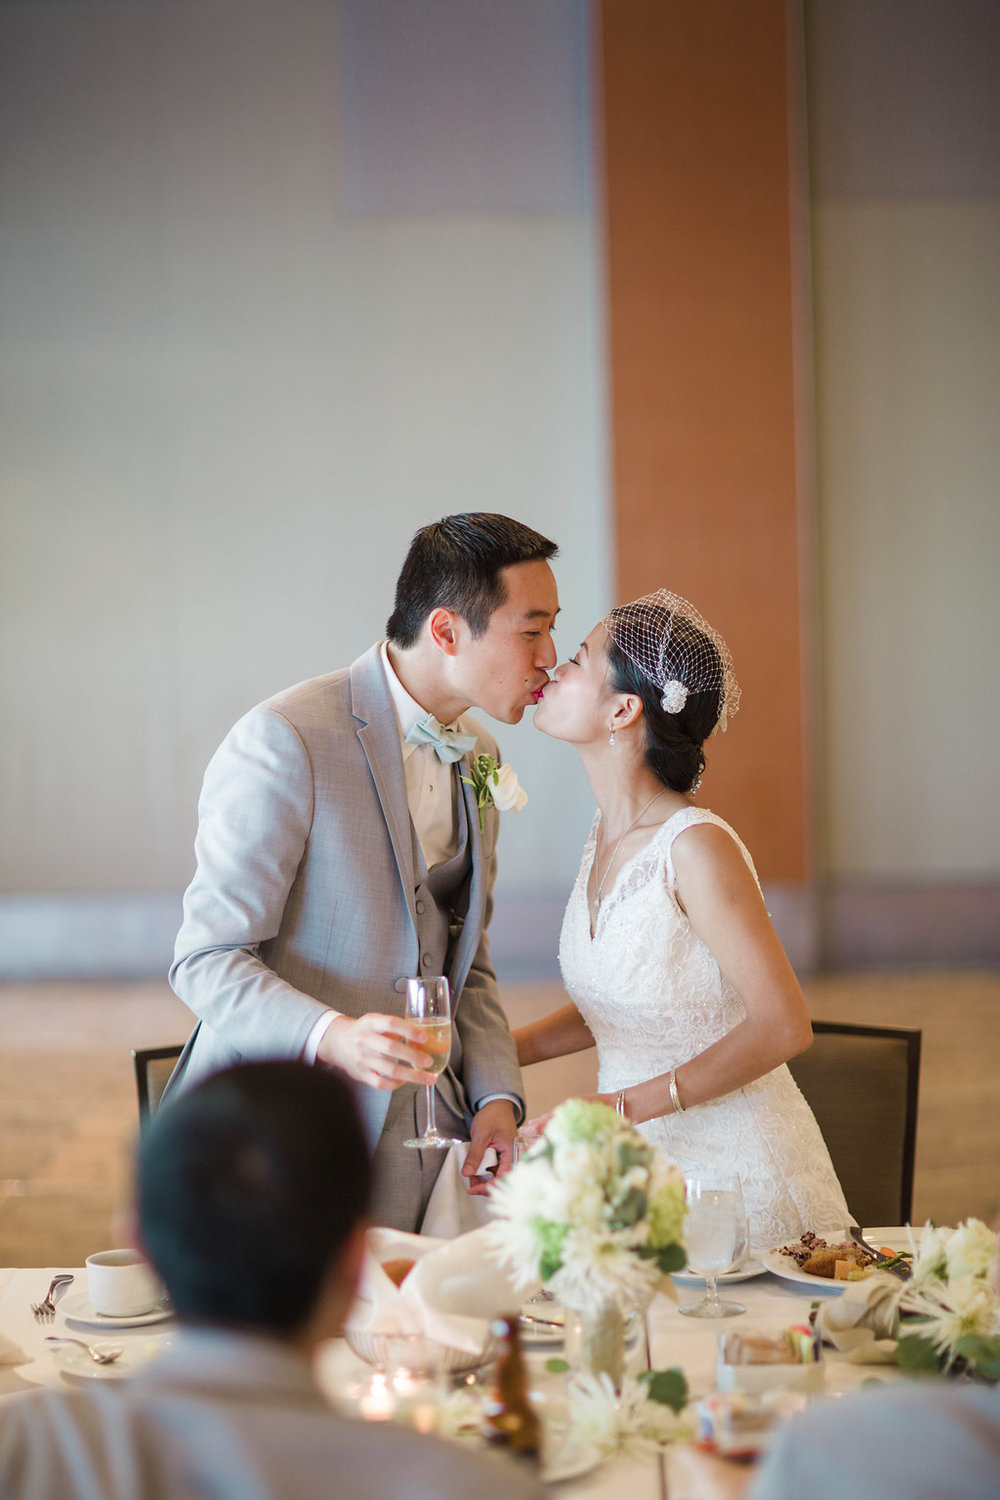 Bao_Uyen+Chris_Wedding_Seattle_Bell_Harbor_6182016_934.jpg